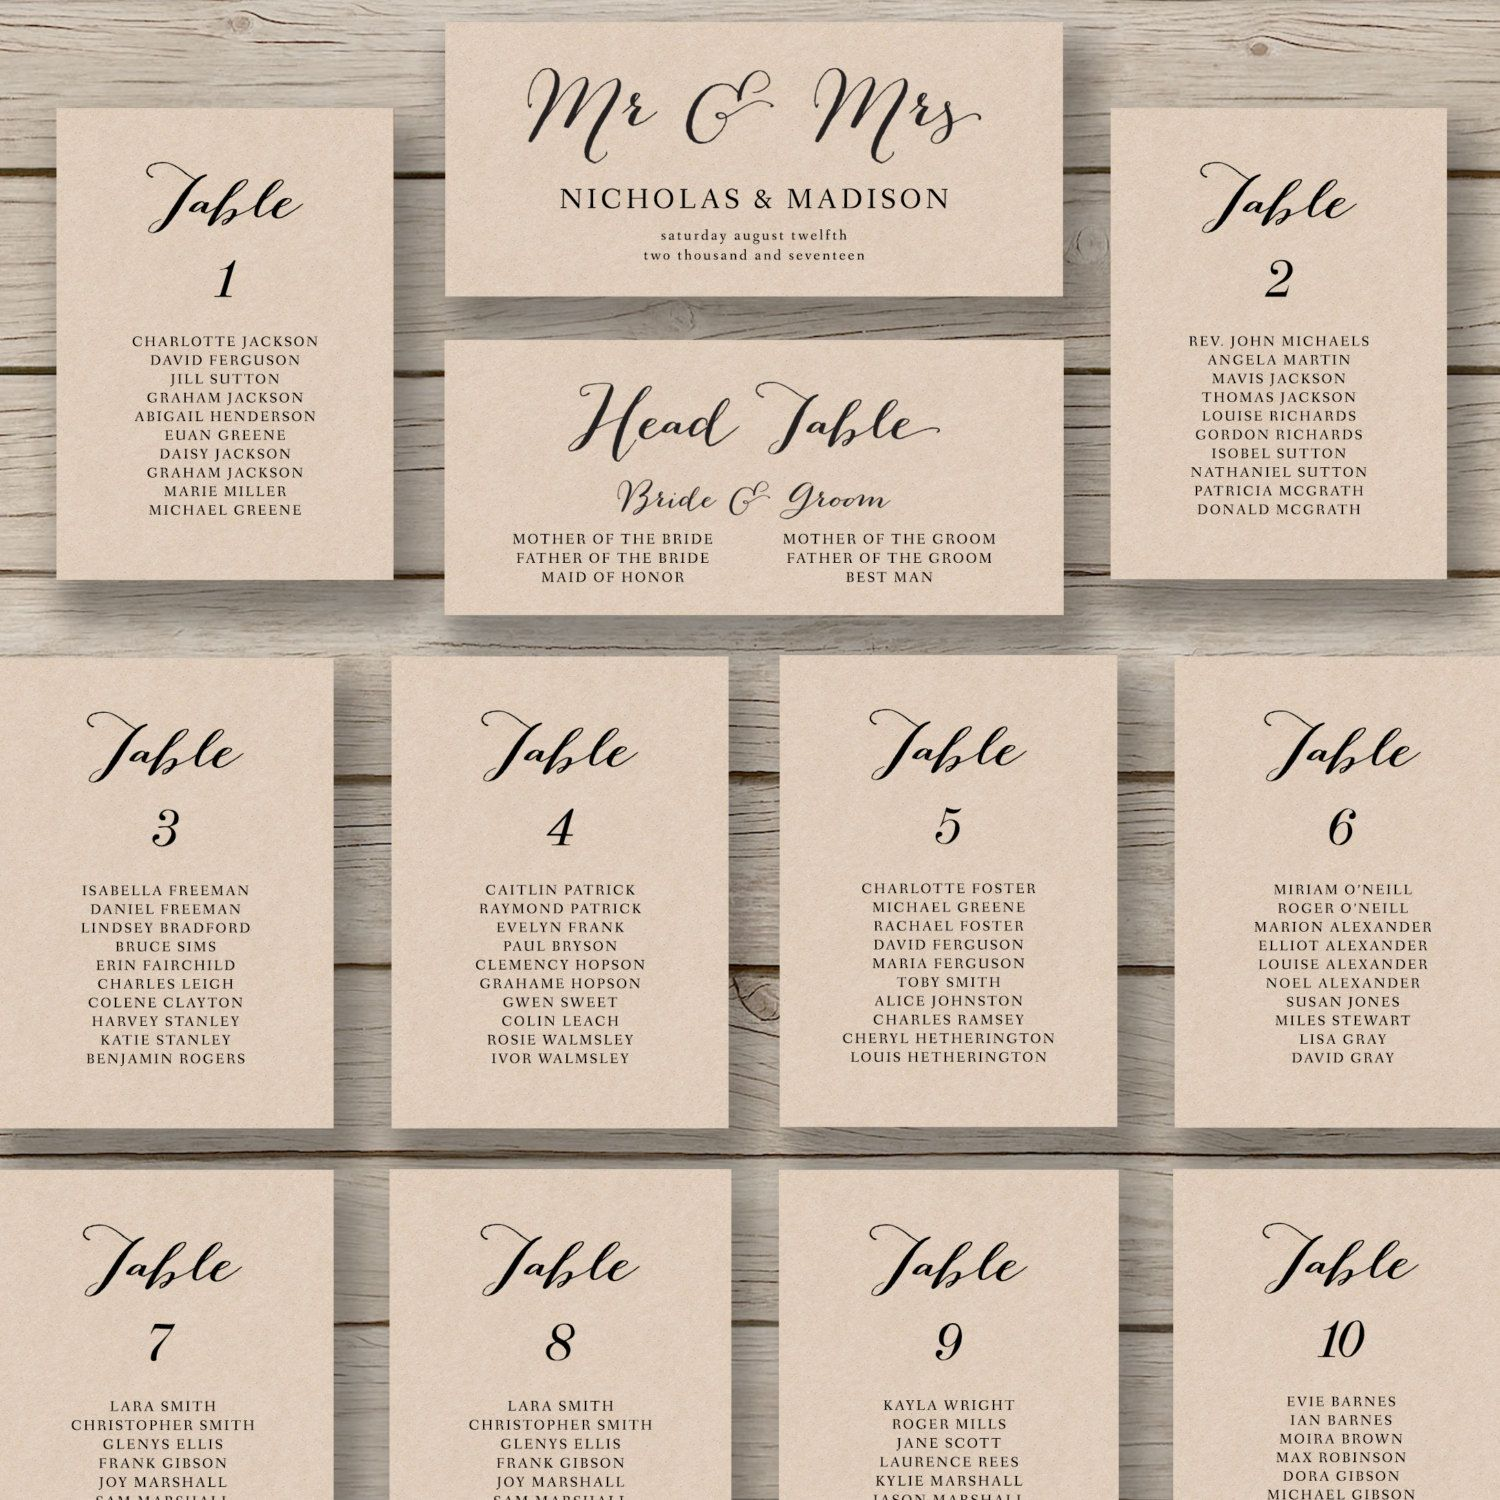 Printable Seating Chart For Wedding Reception: Wedding Seating Chart Template Printable By